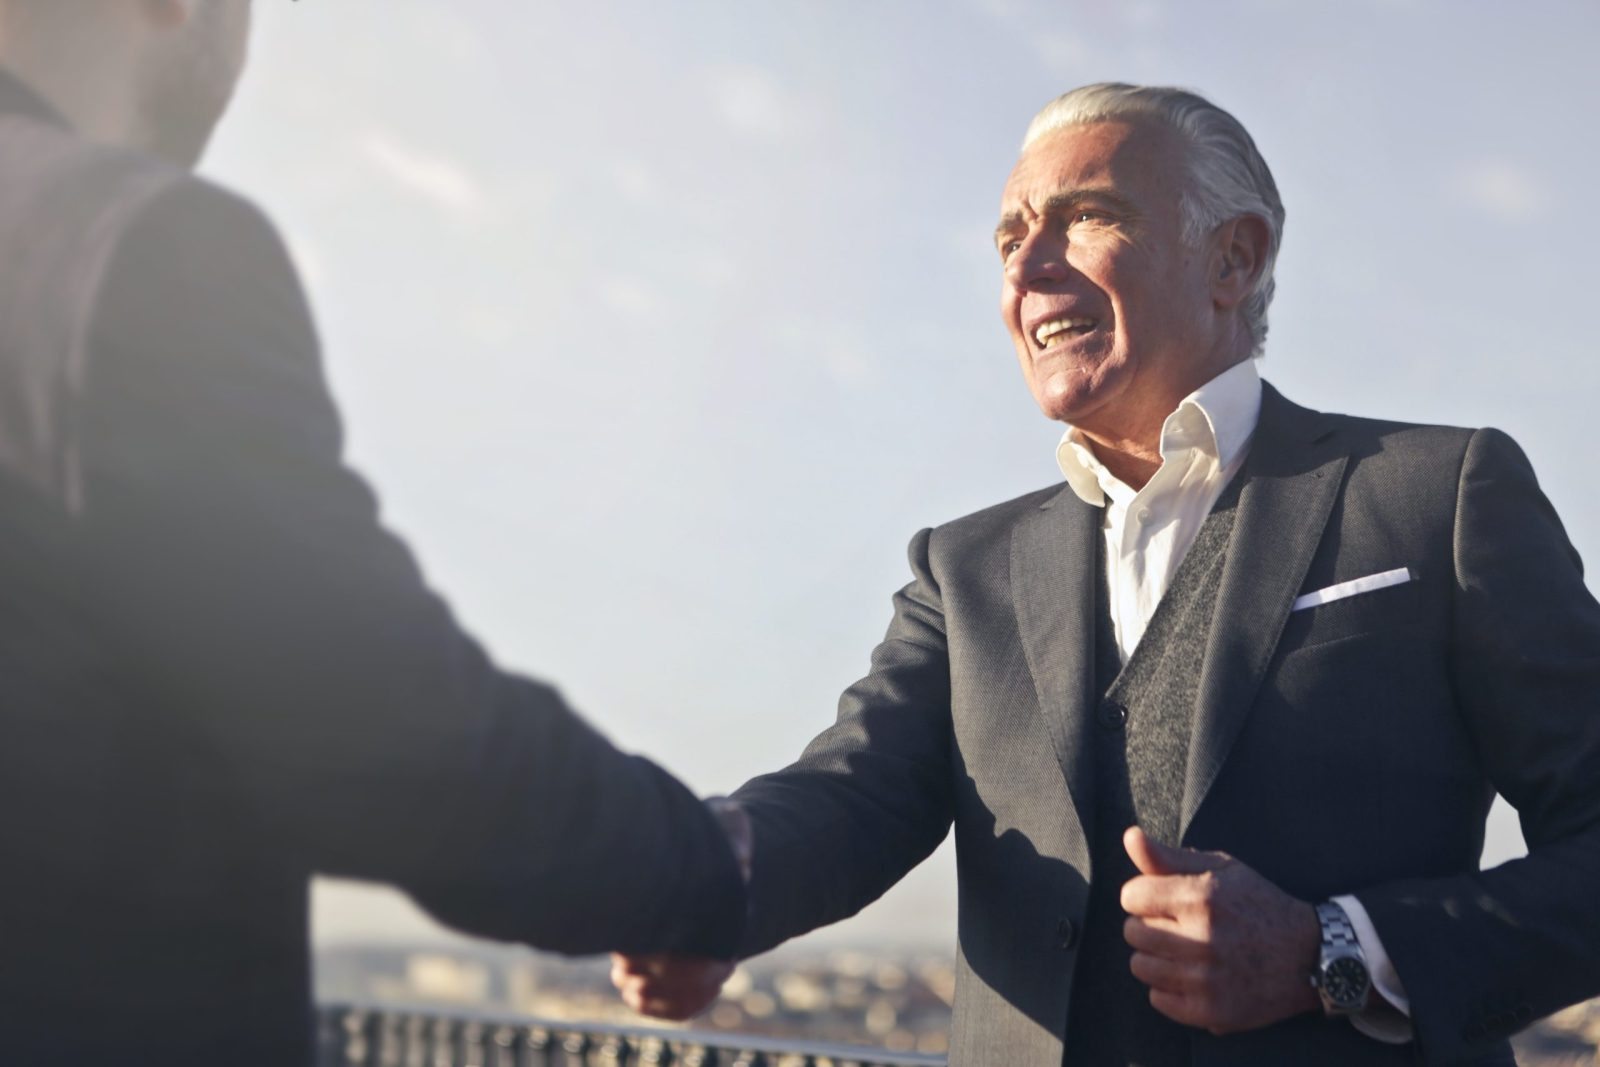 a man in black suite shaking hand